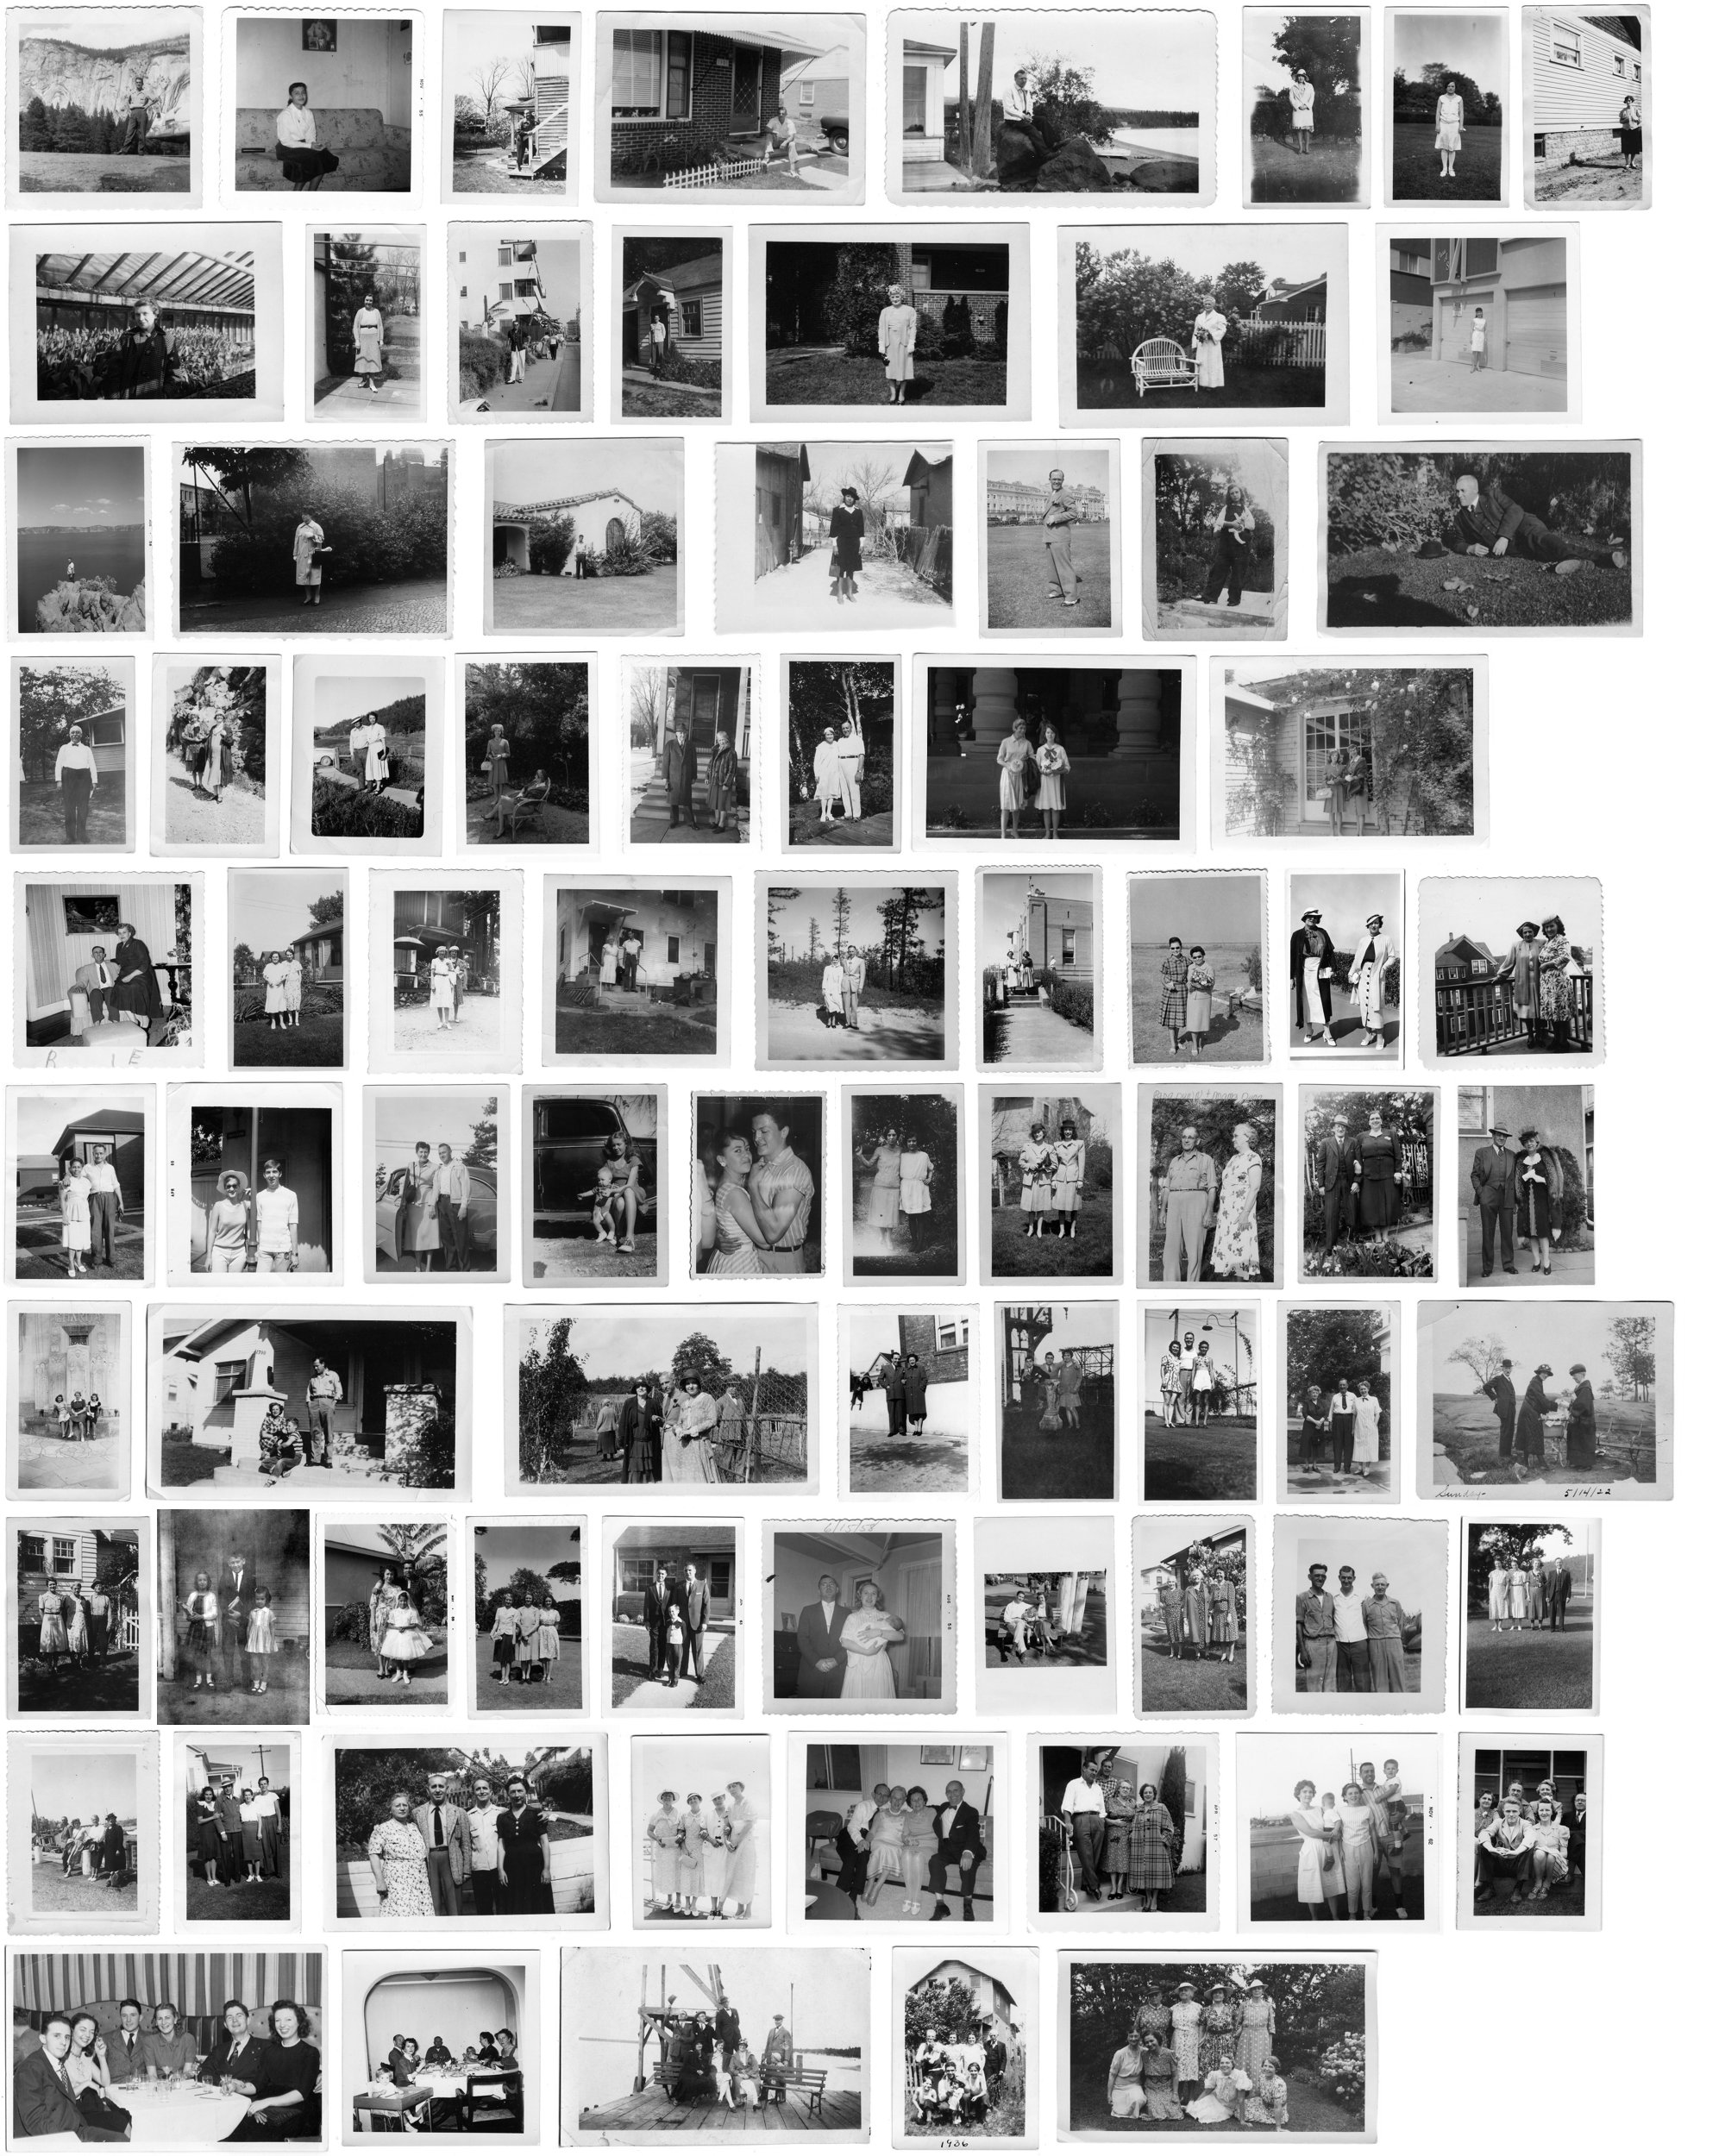 """Normal   0           false   false   false     EN-US   X-NONE   X-NONE                                                                         Example of  non-competitive photography . Montage of anonymous found family photographs from the collection  Look at Me  ( http://look-at-me.tumblr.com ). Thumbnails are displayed in ascending order according to the number of persons in the photographs starting from upper left corner. Vast majority of these images have no title and date. For this montage, I selected images that were tagged """"black and white"""" assuming that the largest part of such images most likely are from c. the 1950s and no later than the 1960s when color photography became commonplace."""